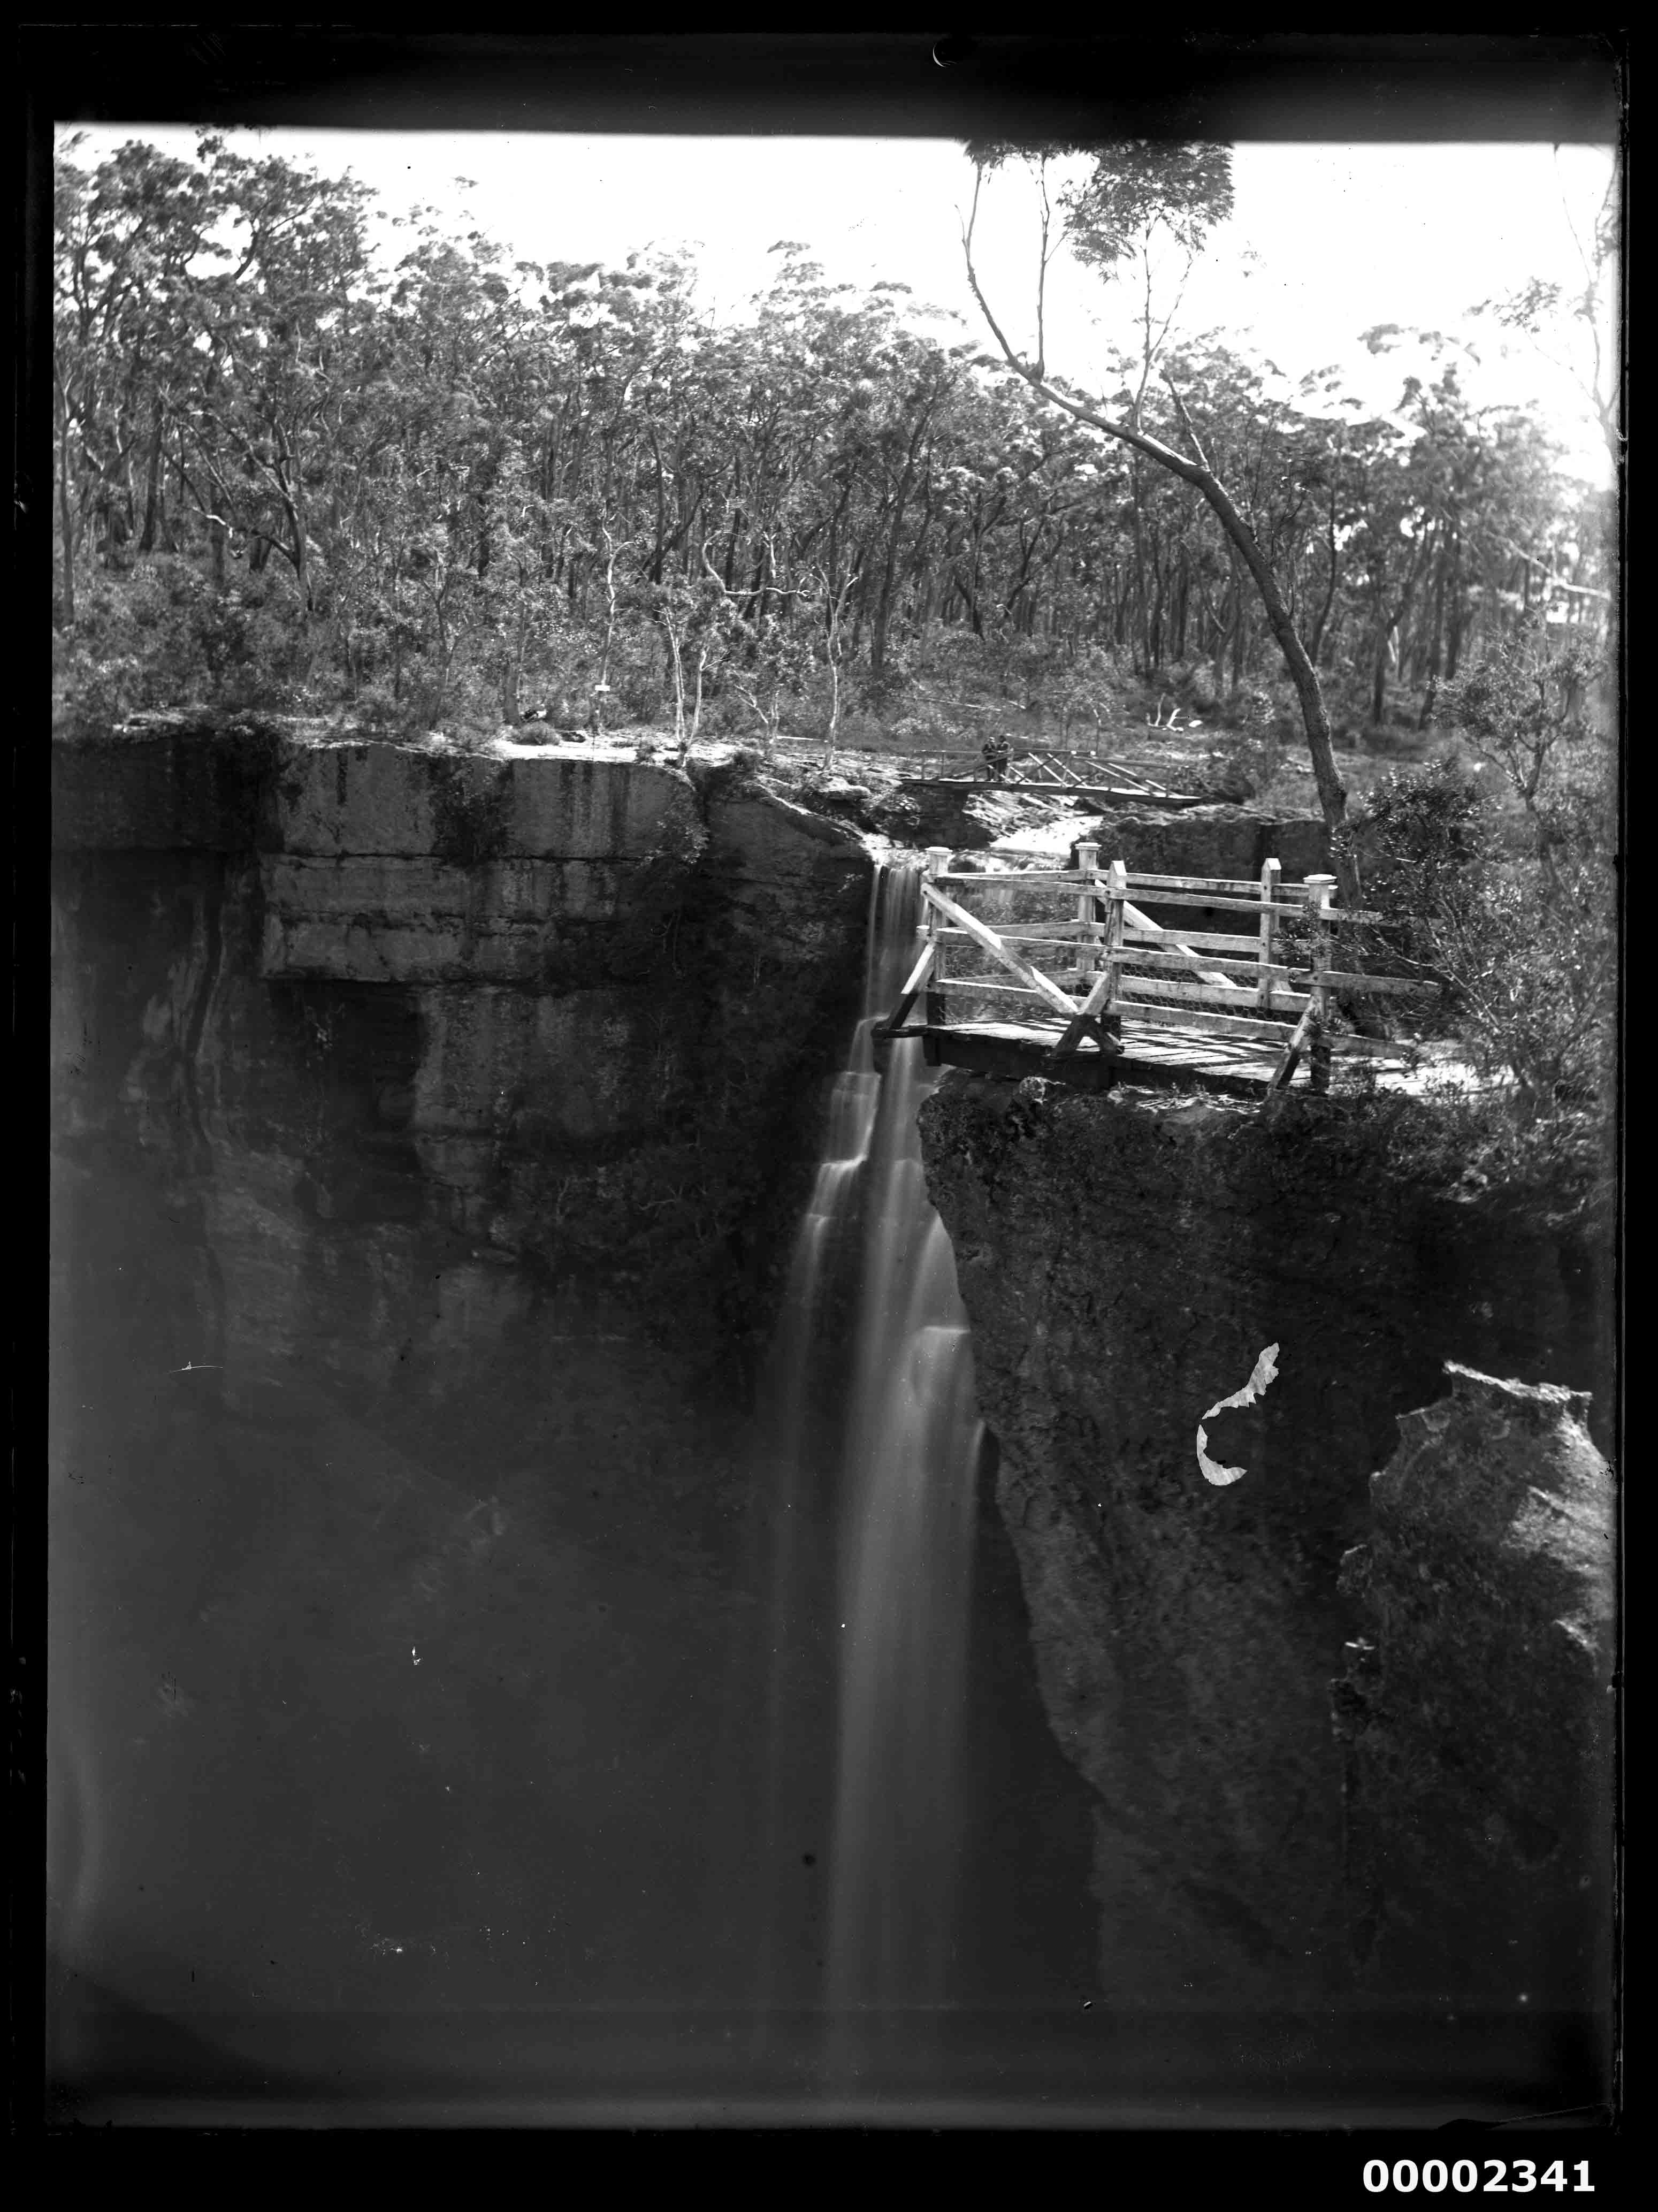 Waterfall, possibly on the Hawkesbury River, NSW, 1880-1909